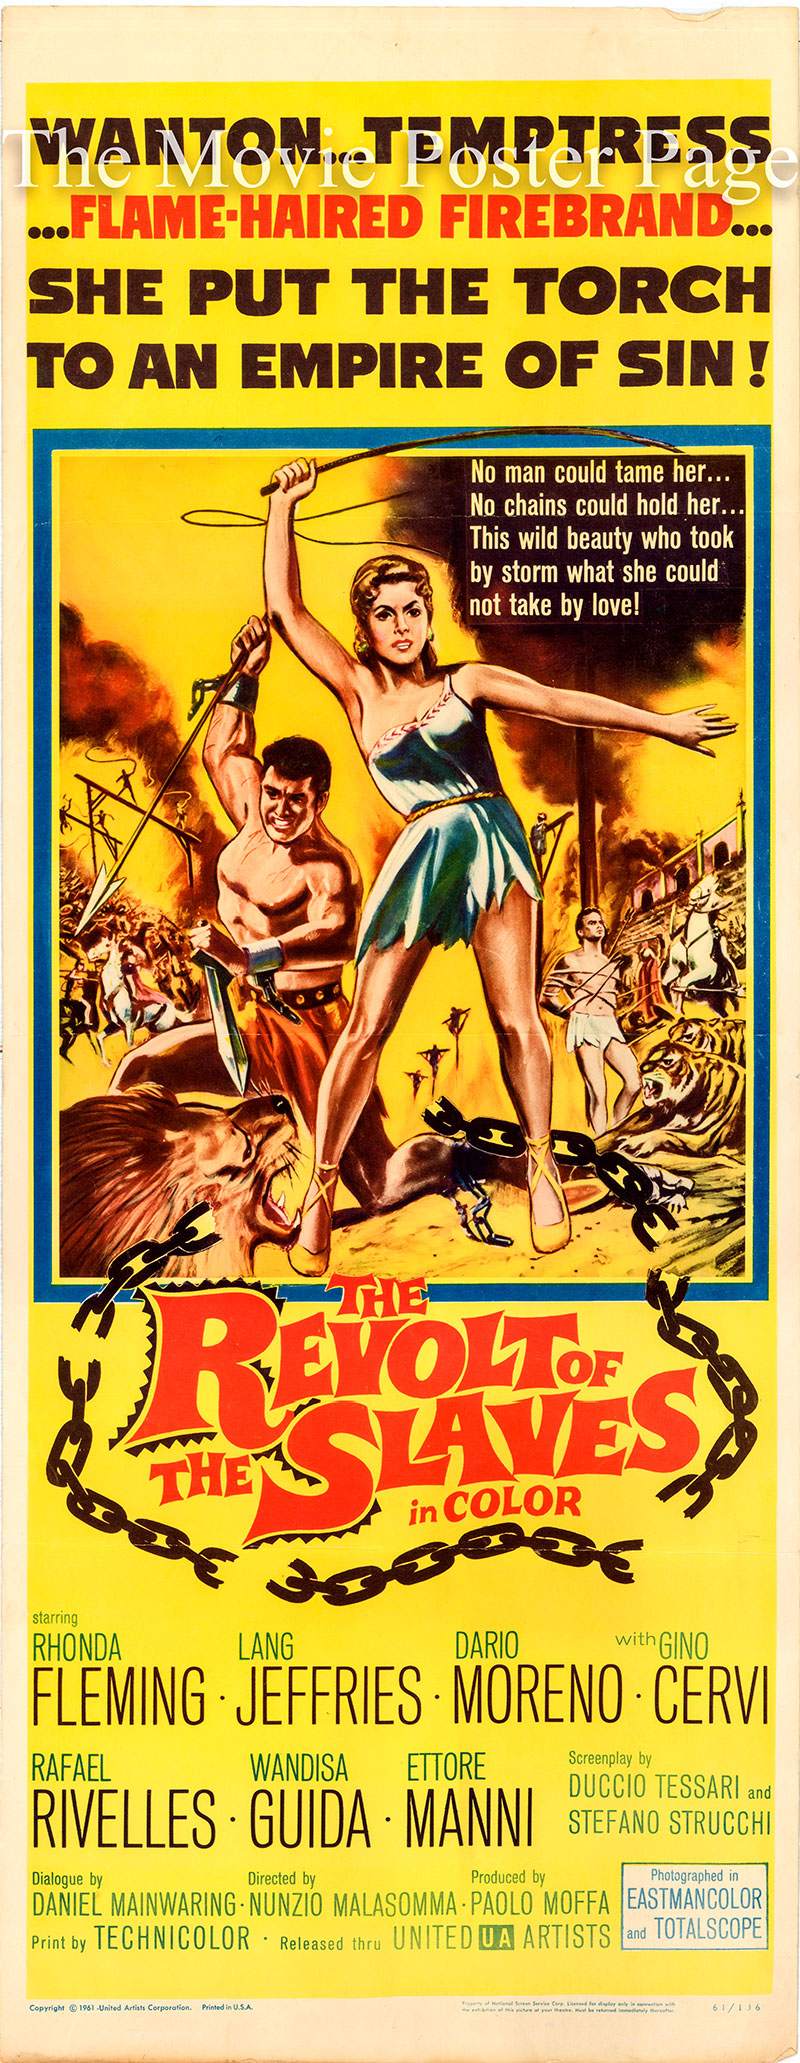 Pictured is a US insert poster for the 1960 Nunzio Malassoma film The Revolt of the Slaves starring Rhonda Fleming as Fabiola.